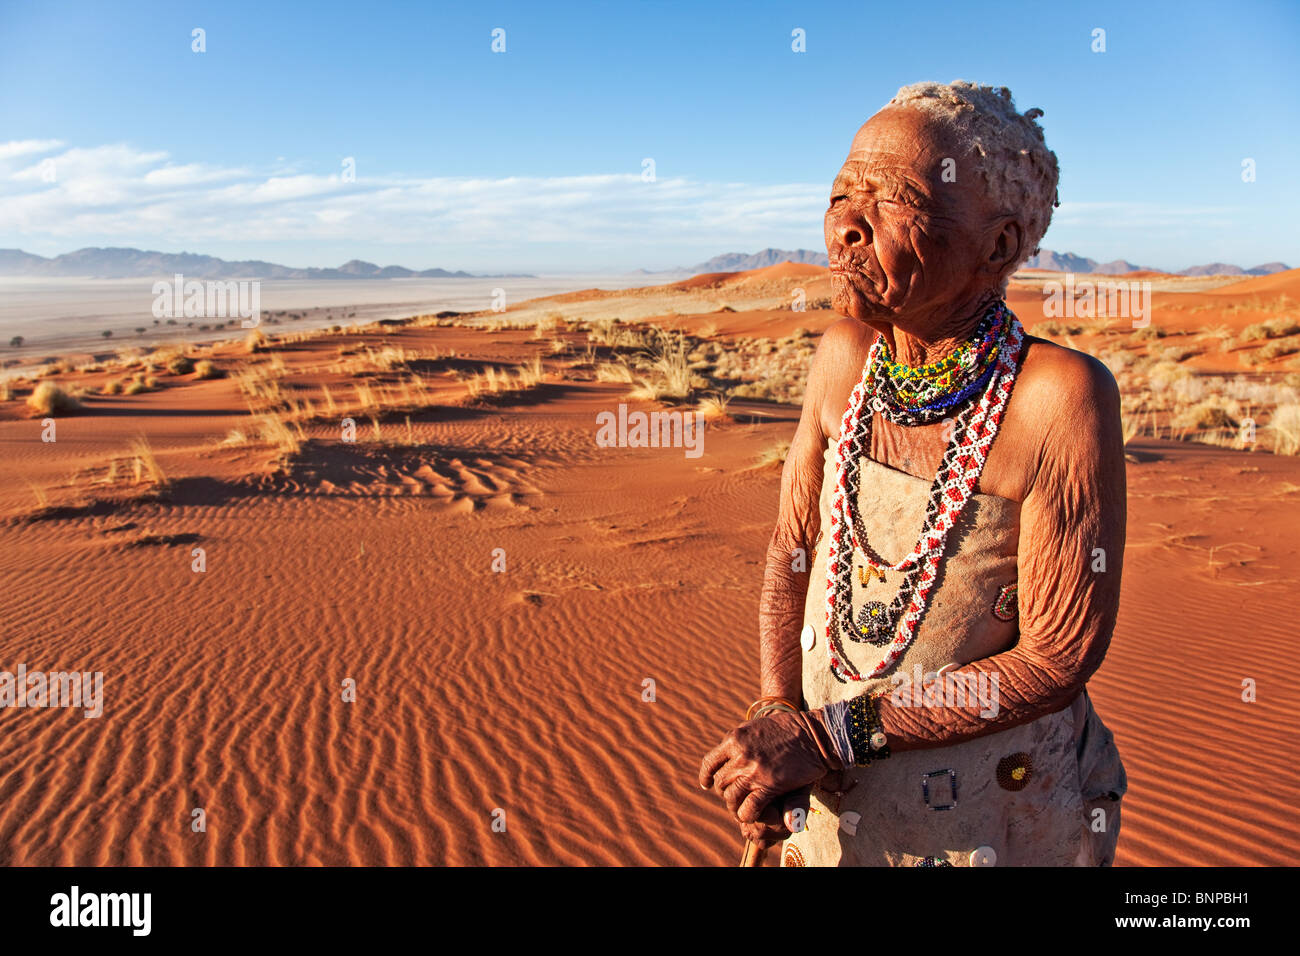 Elderly Bushman / San woman standing in desert - Stock Image